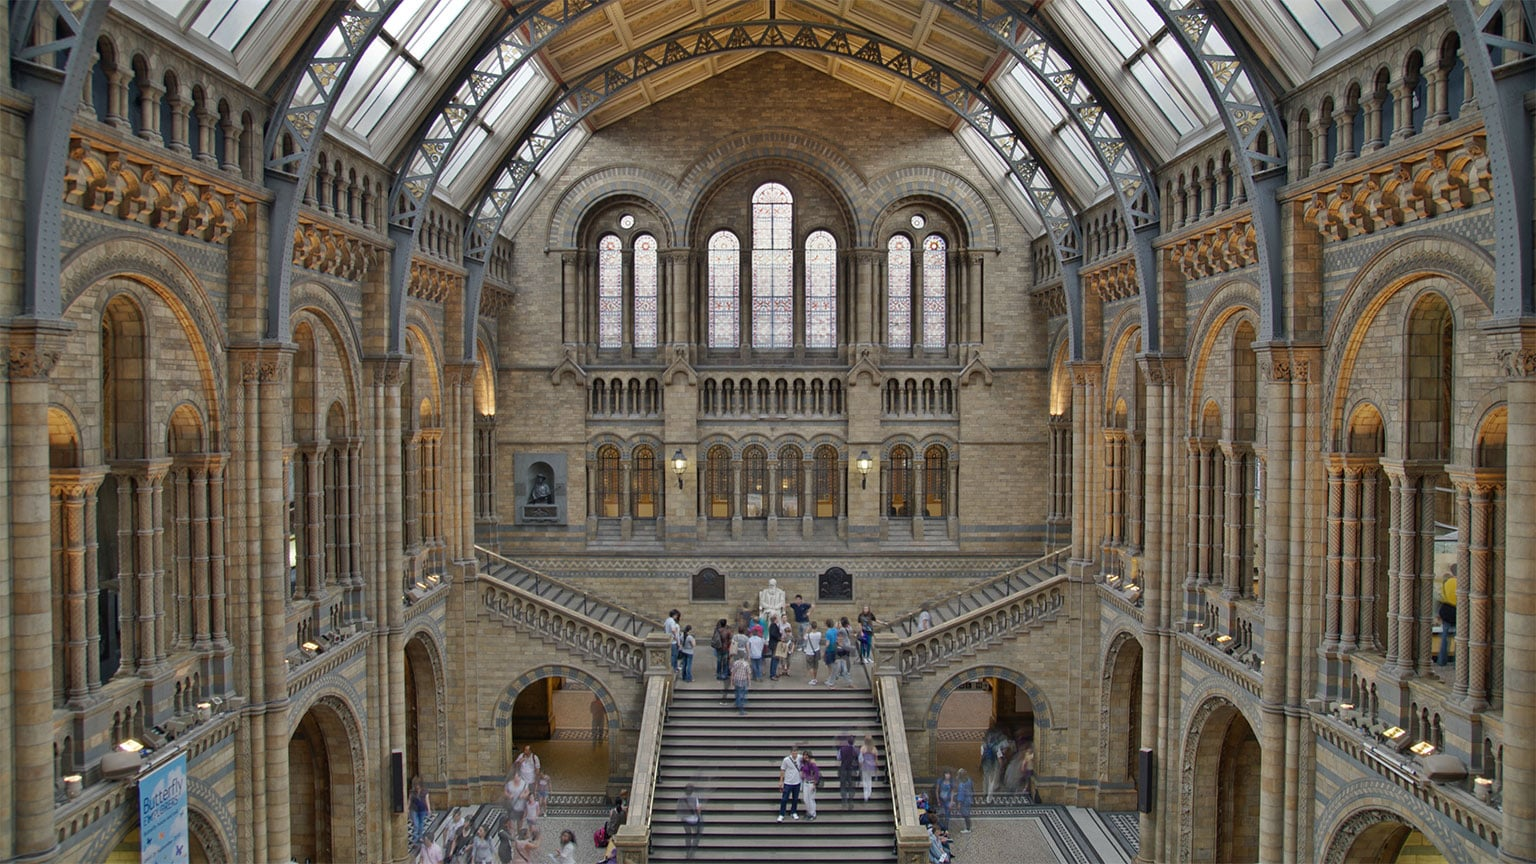 The Central Hall, with the Treasures gallery on the upper mezzanine